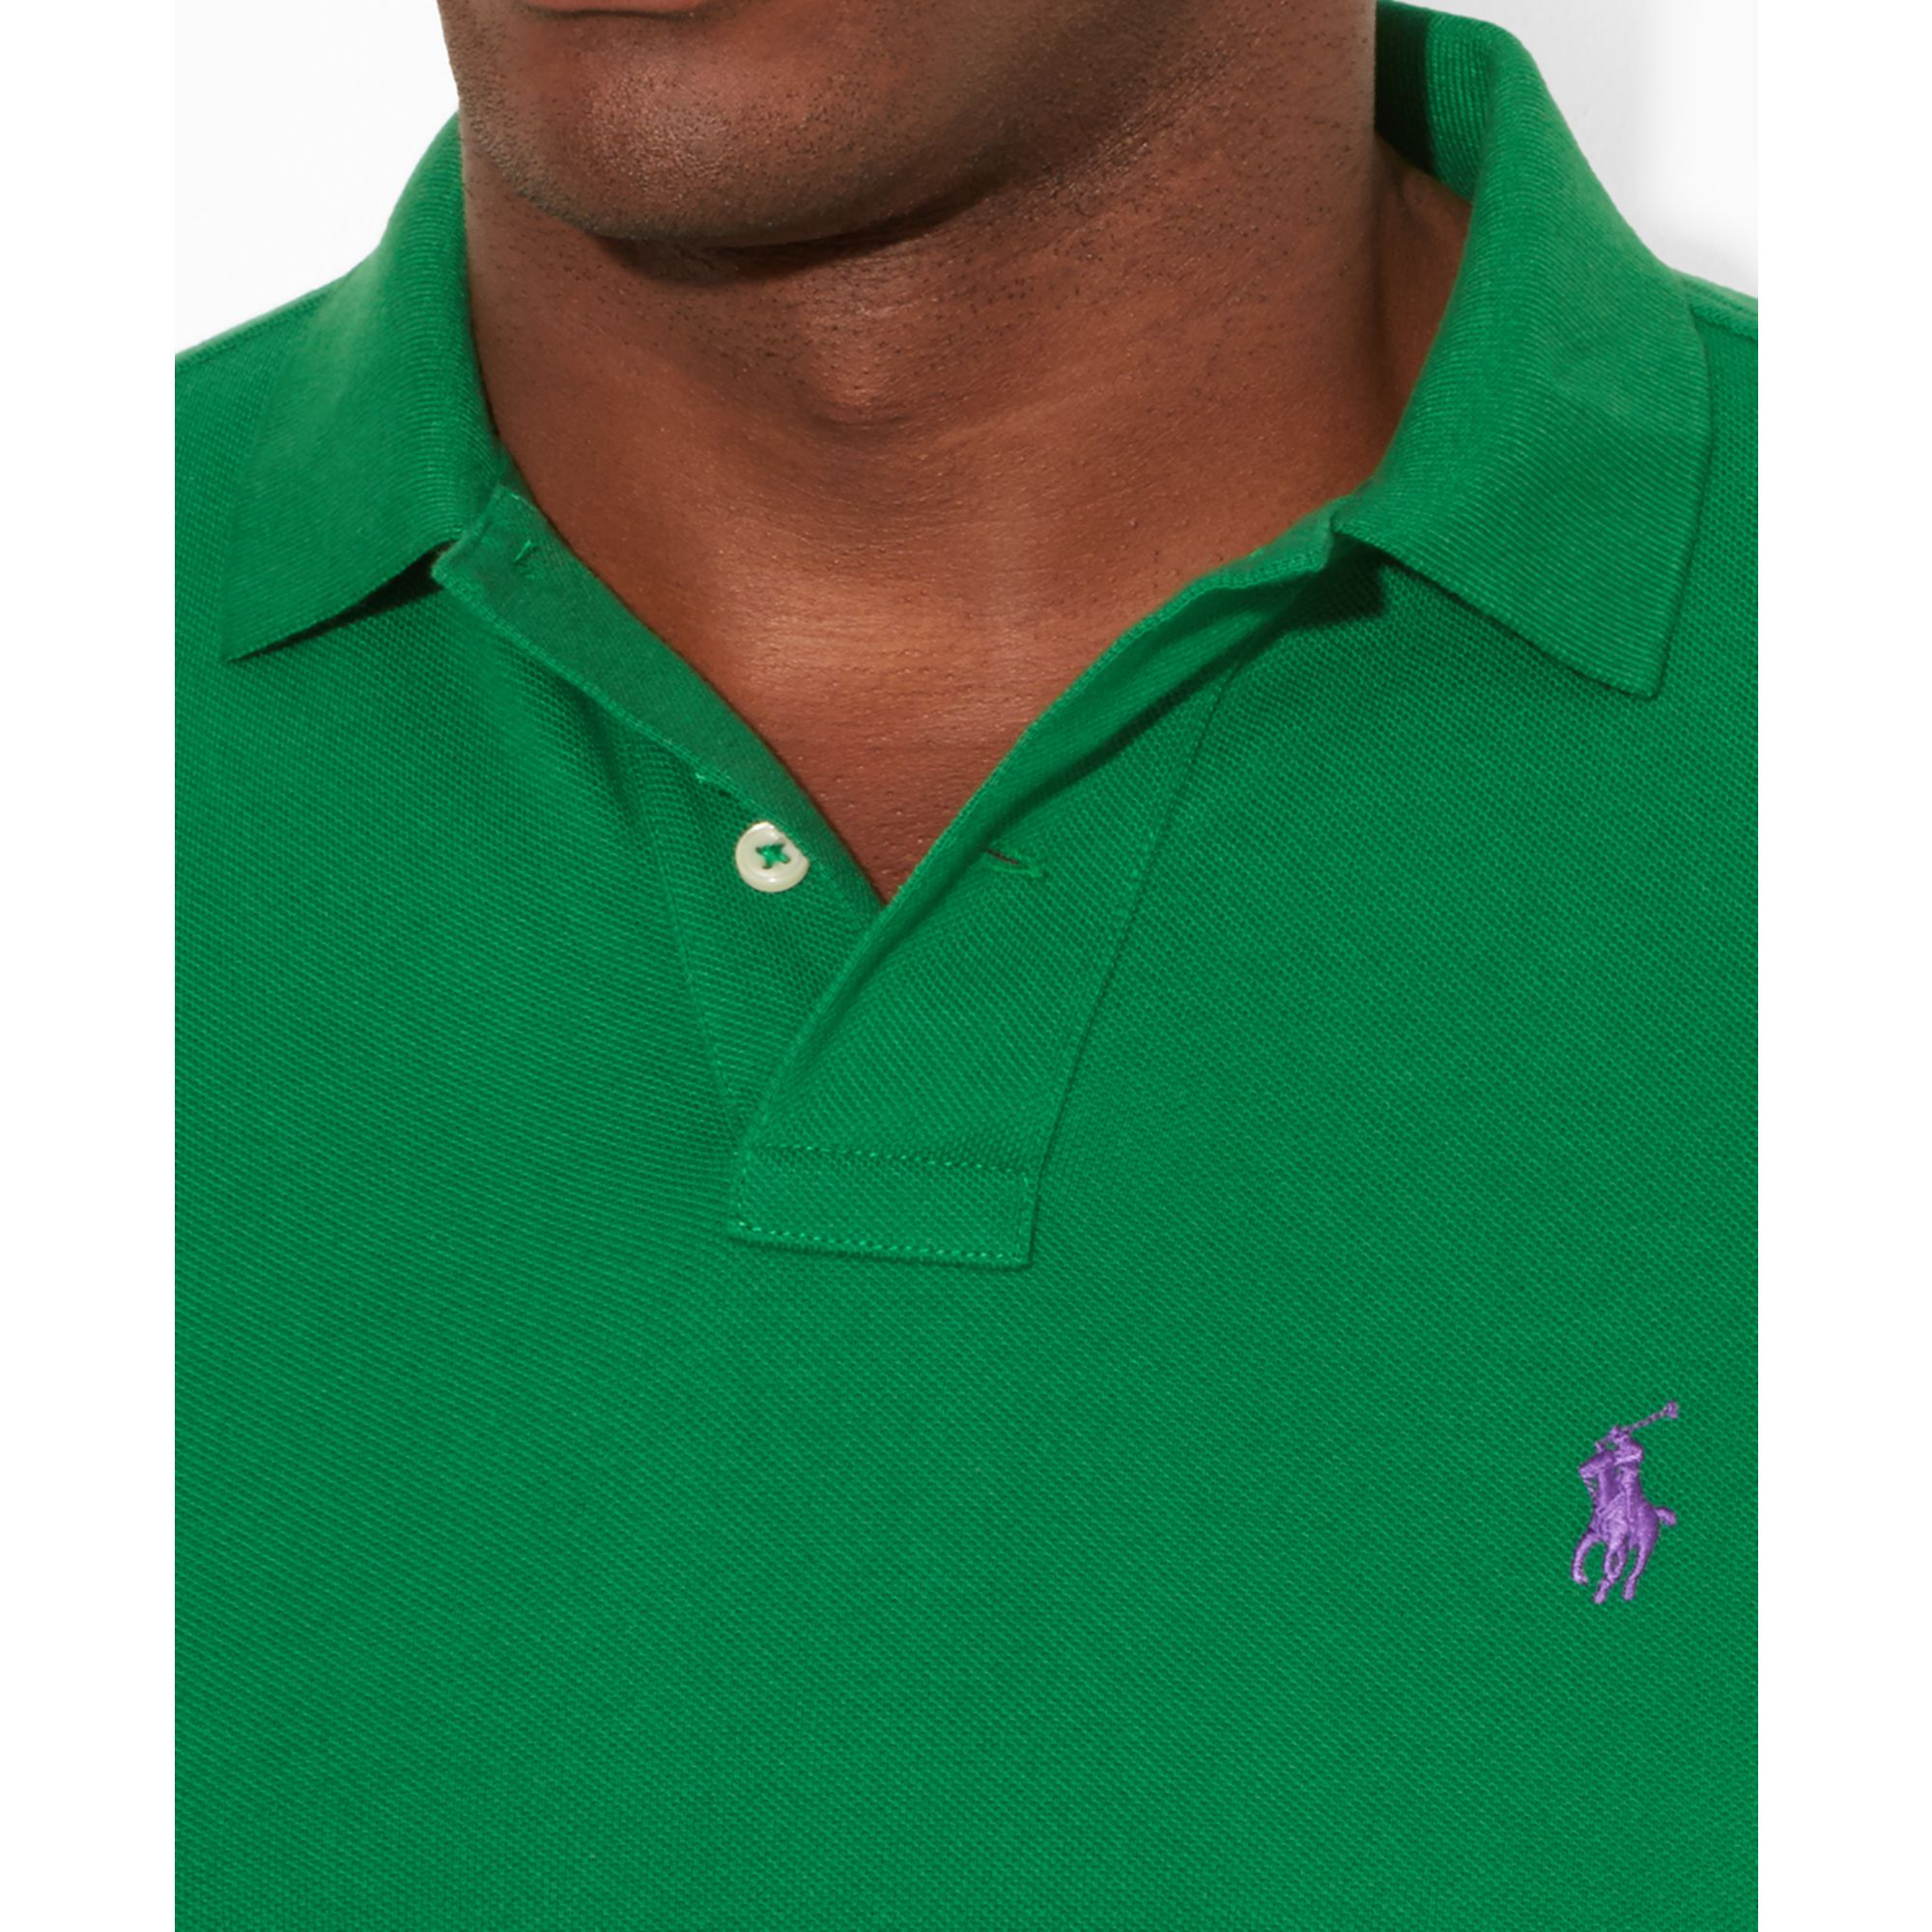 Polo ralph lauren Classic-Fit Short-Sleeve Cotton Mesh Polo in Green for Men